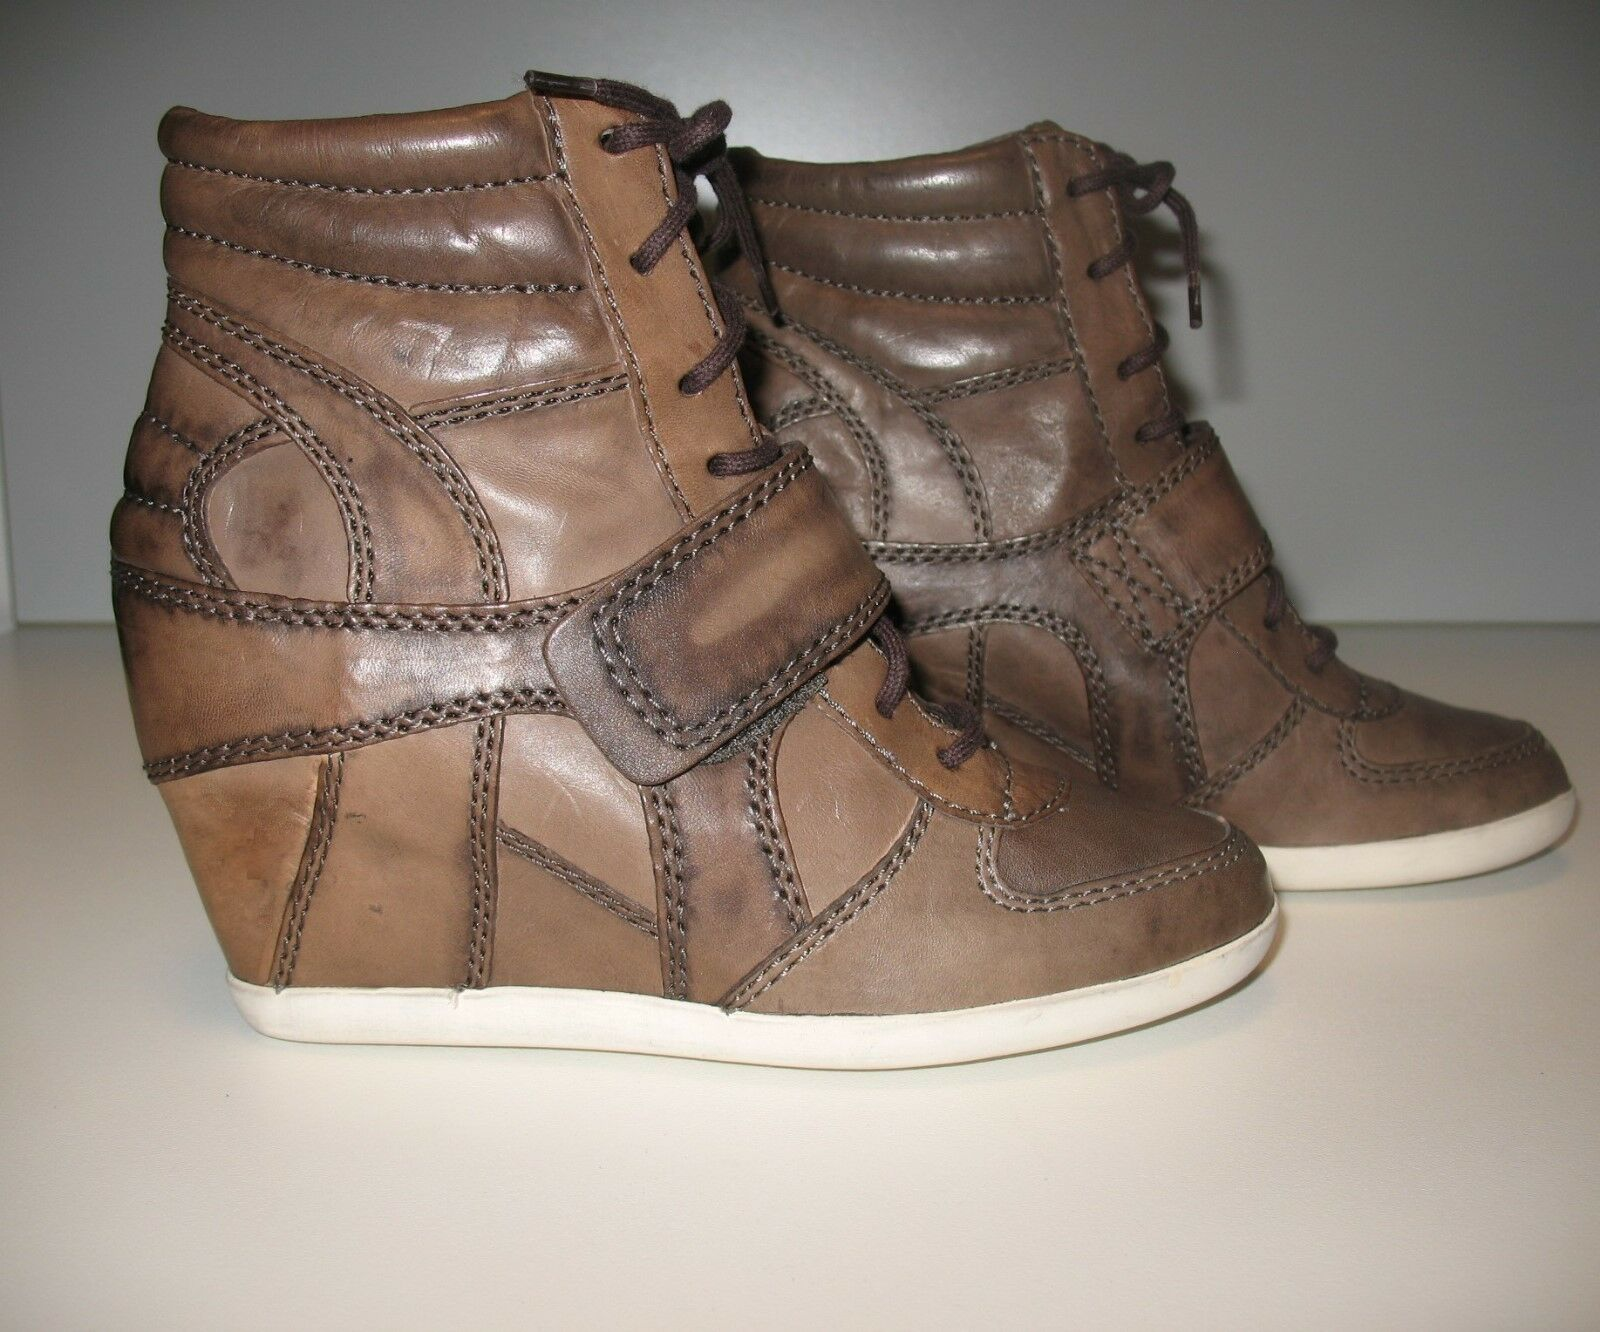 NEW ASH sneakers in brown brown brown leather 299b21